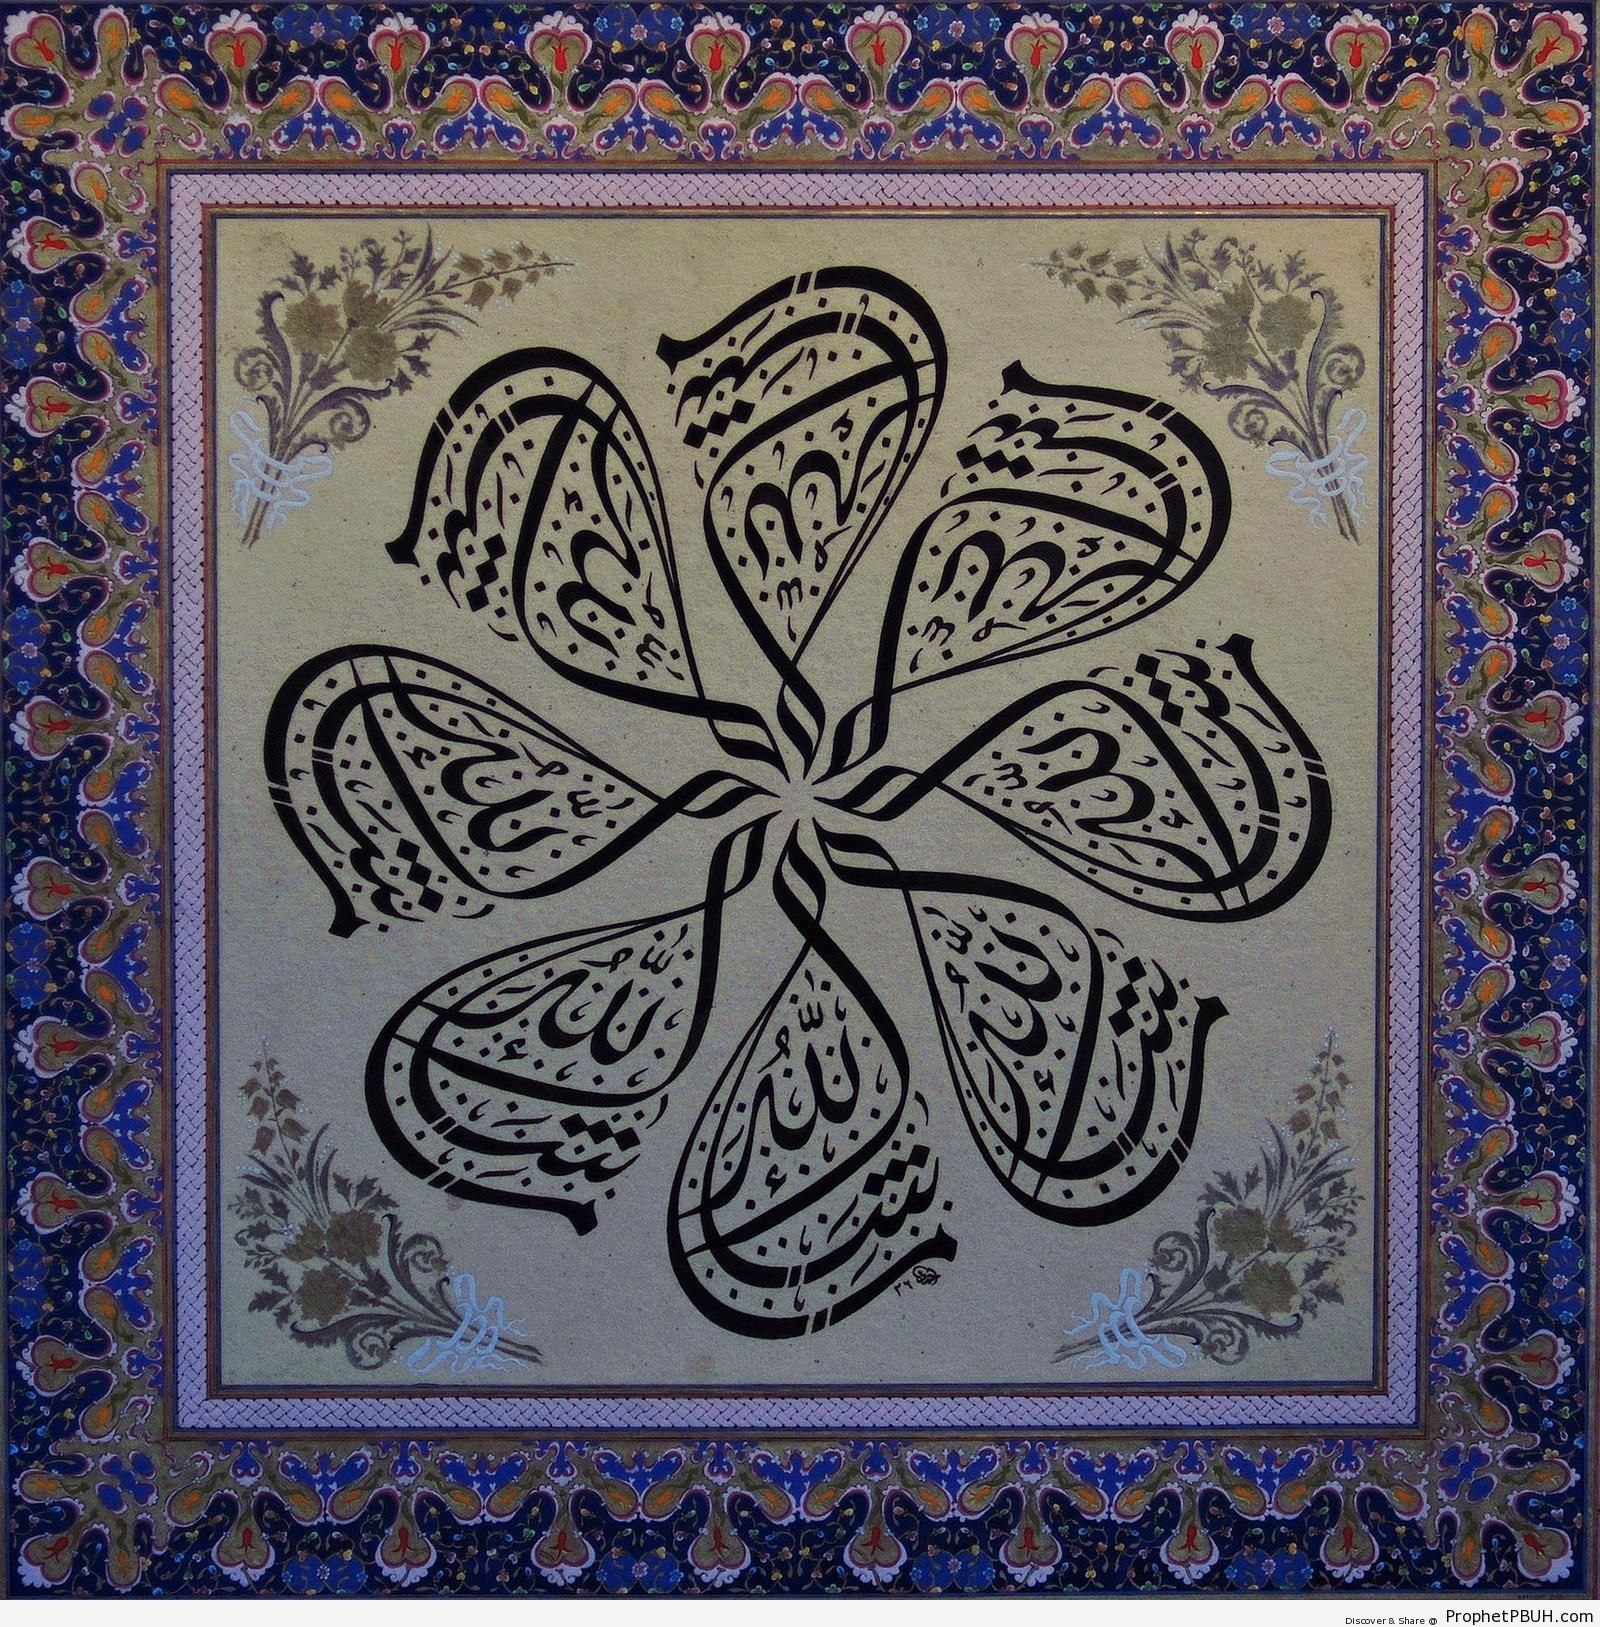 Ma Sha Allah Calligraphy - Islamic Calligraphy and Typography